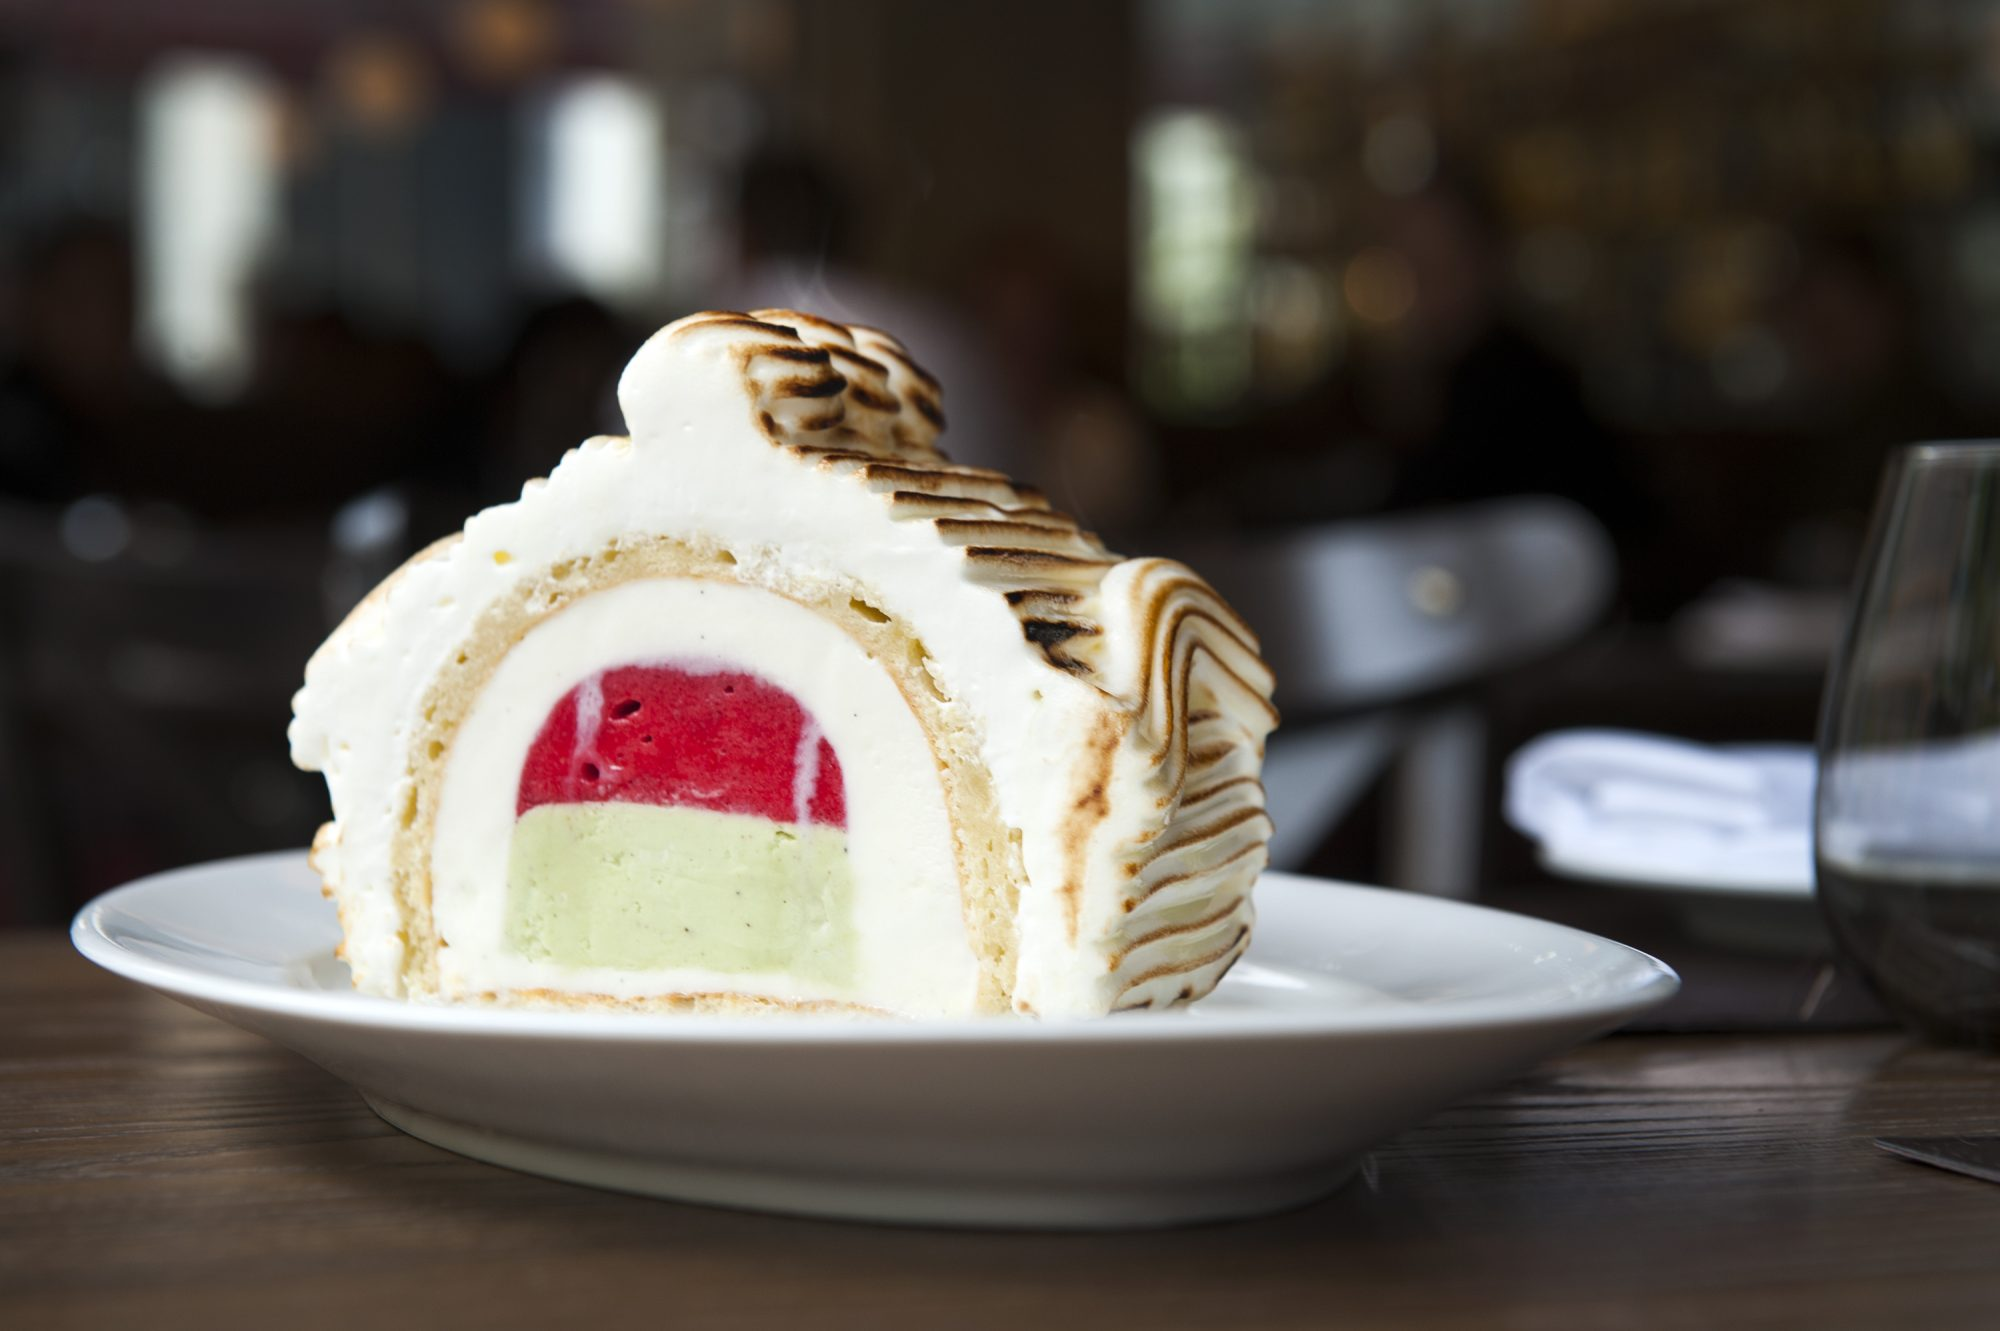 Baked Alaska red and green Getty 8/12/20